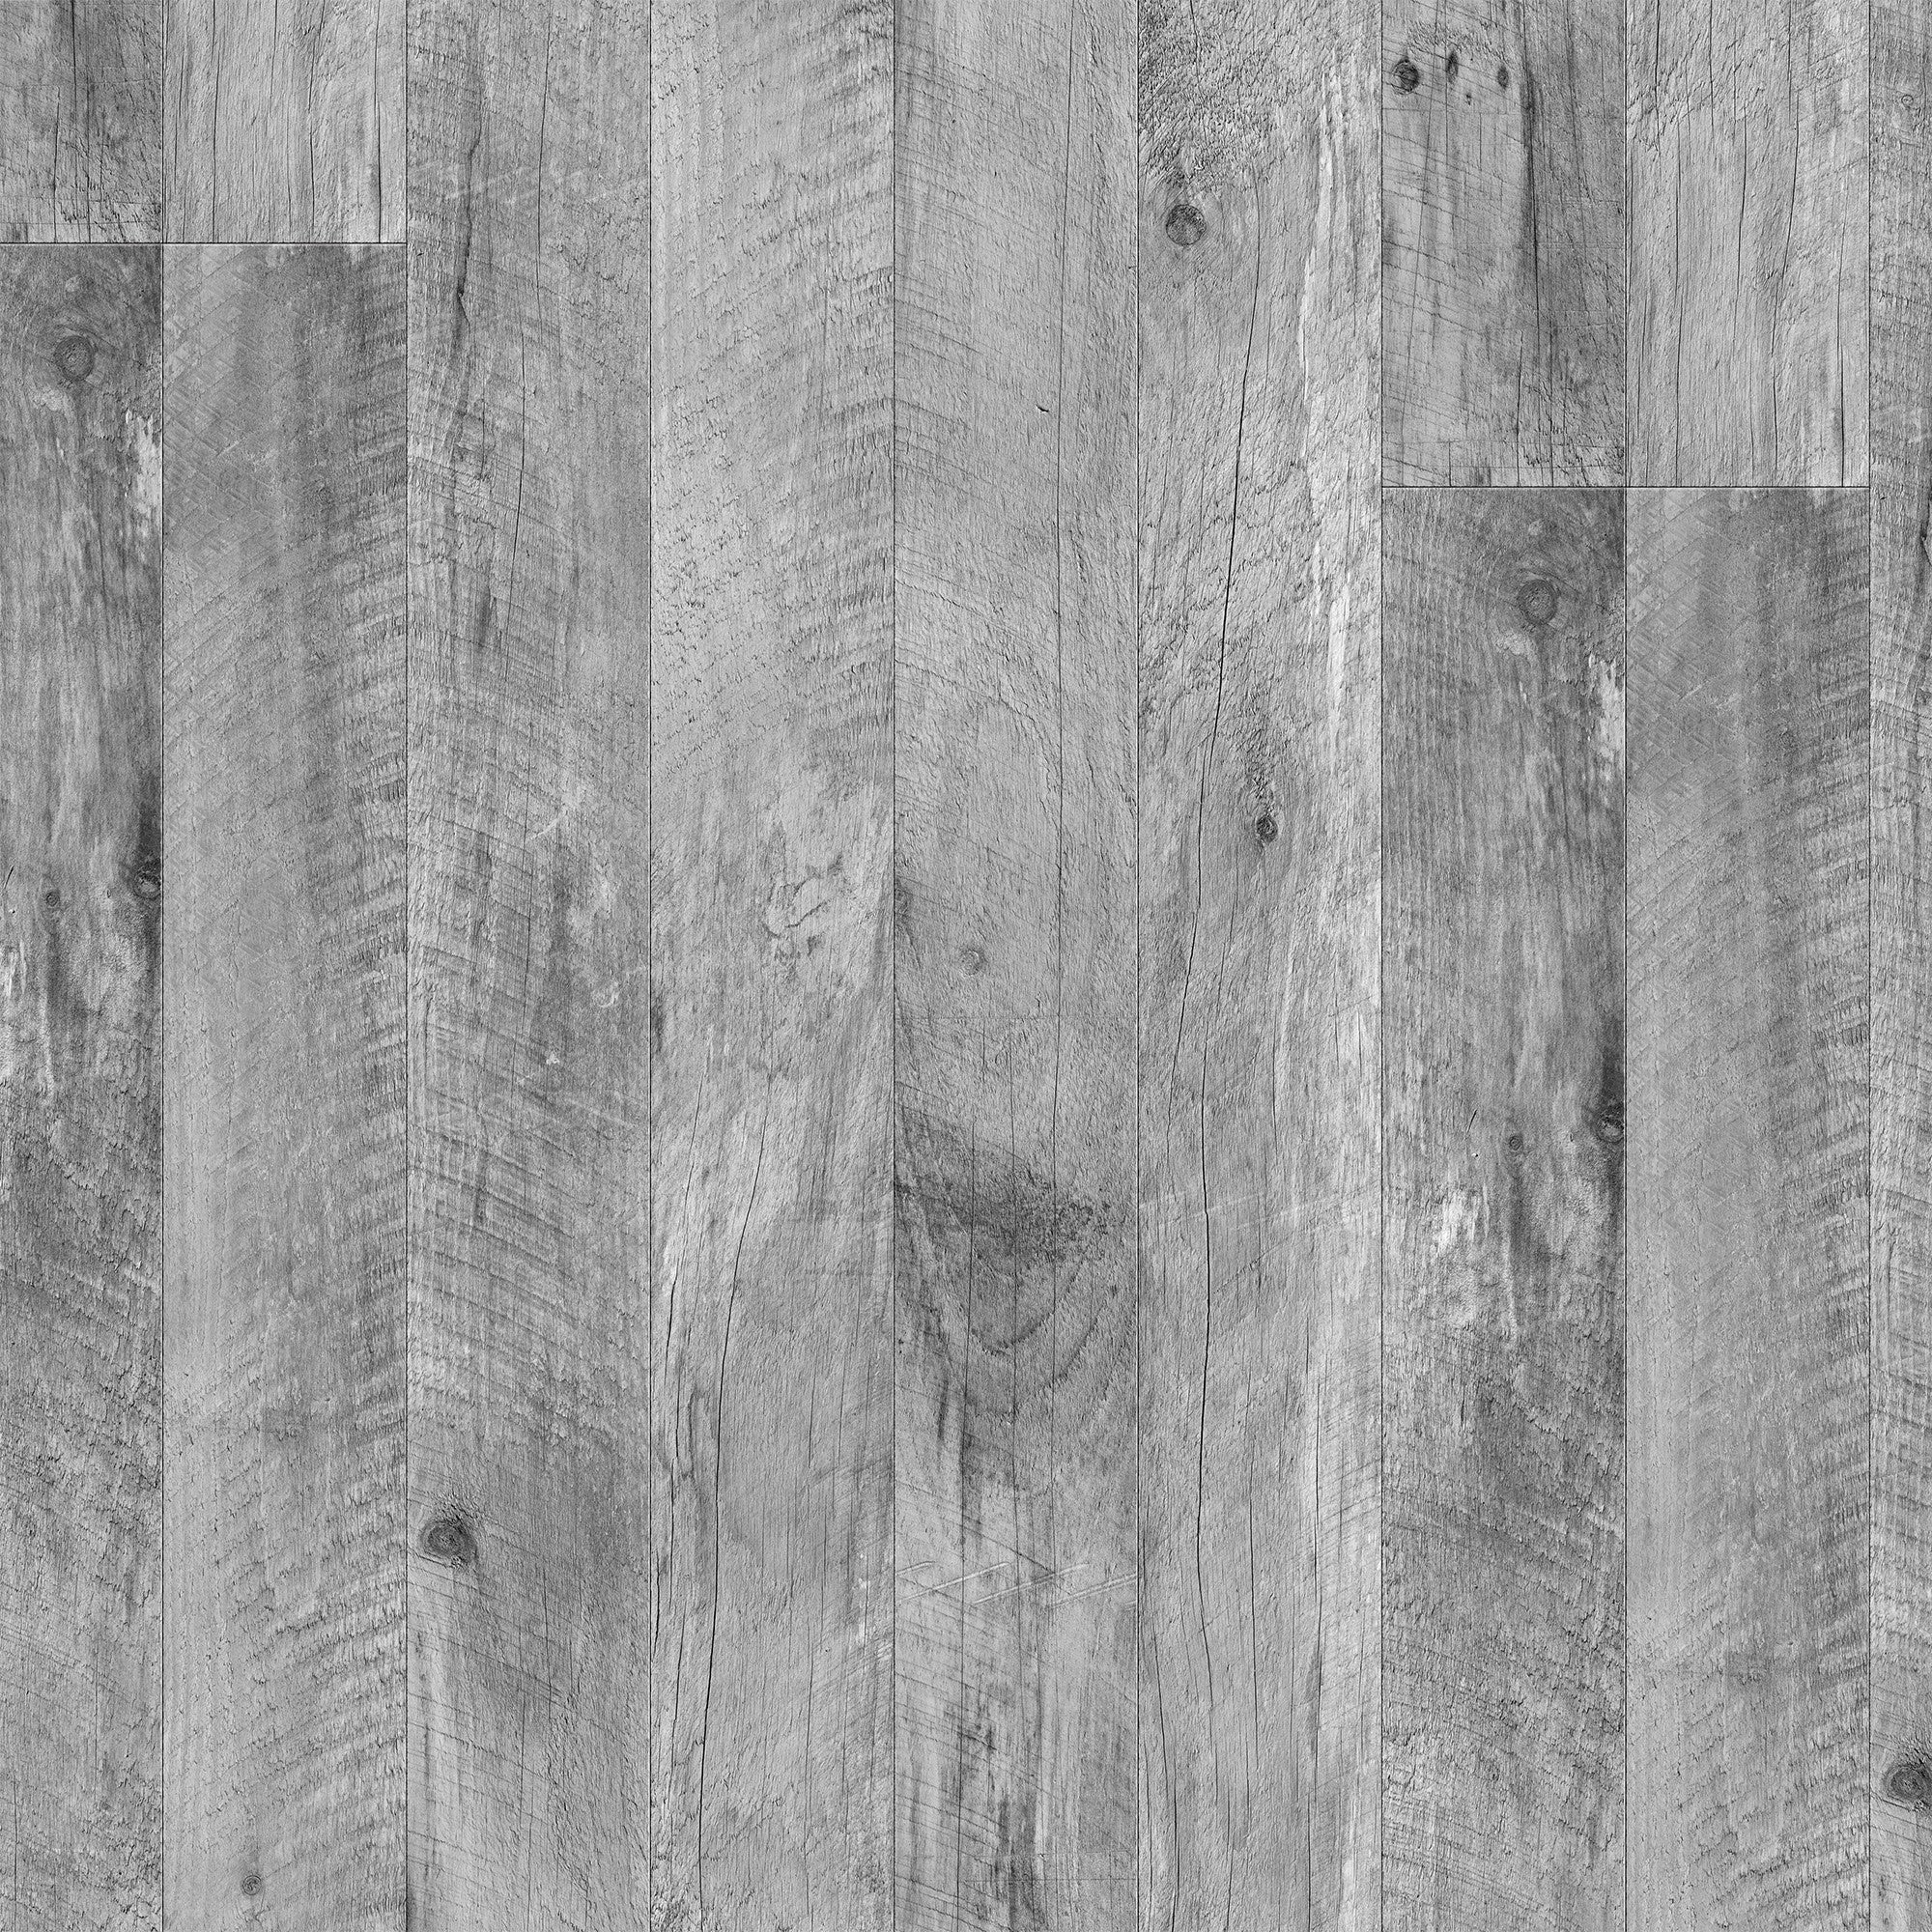 Barn Wood Gray Wallpaper